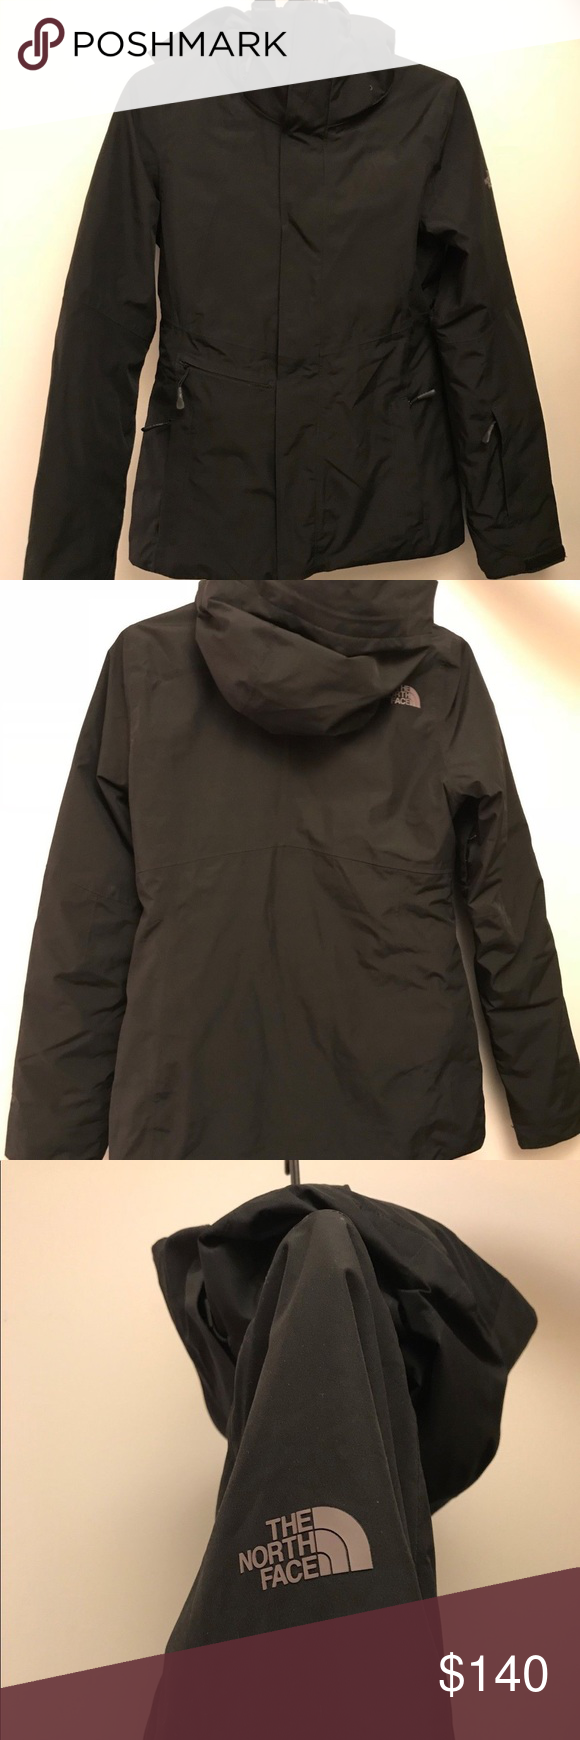 The North Face 2 In 1 Jacket Jackets North Face Jacket Black North Face [ 1740 x 580 Pixel ]